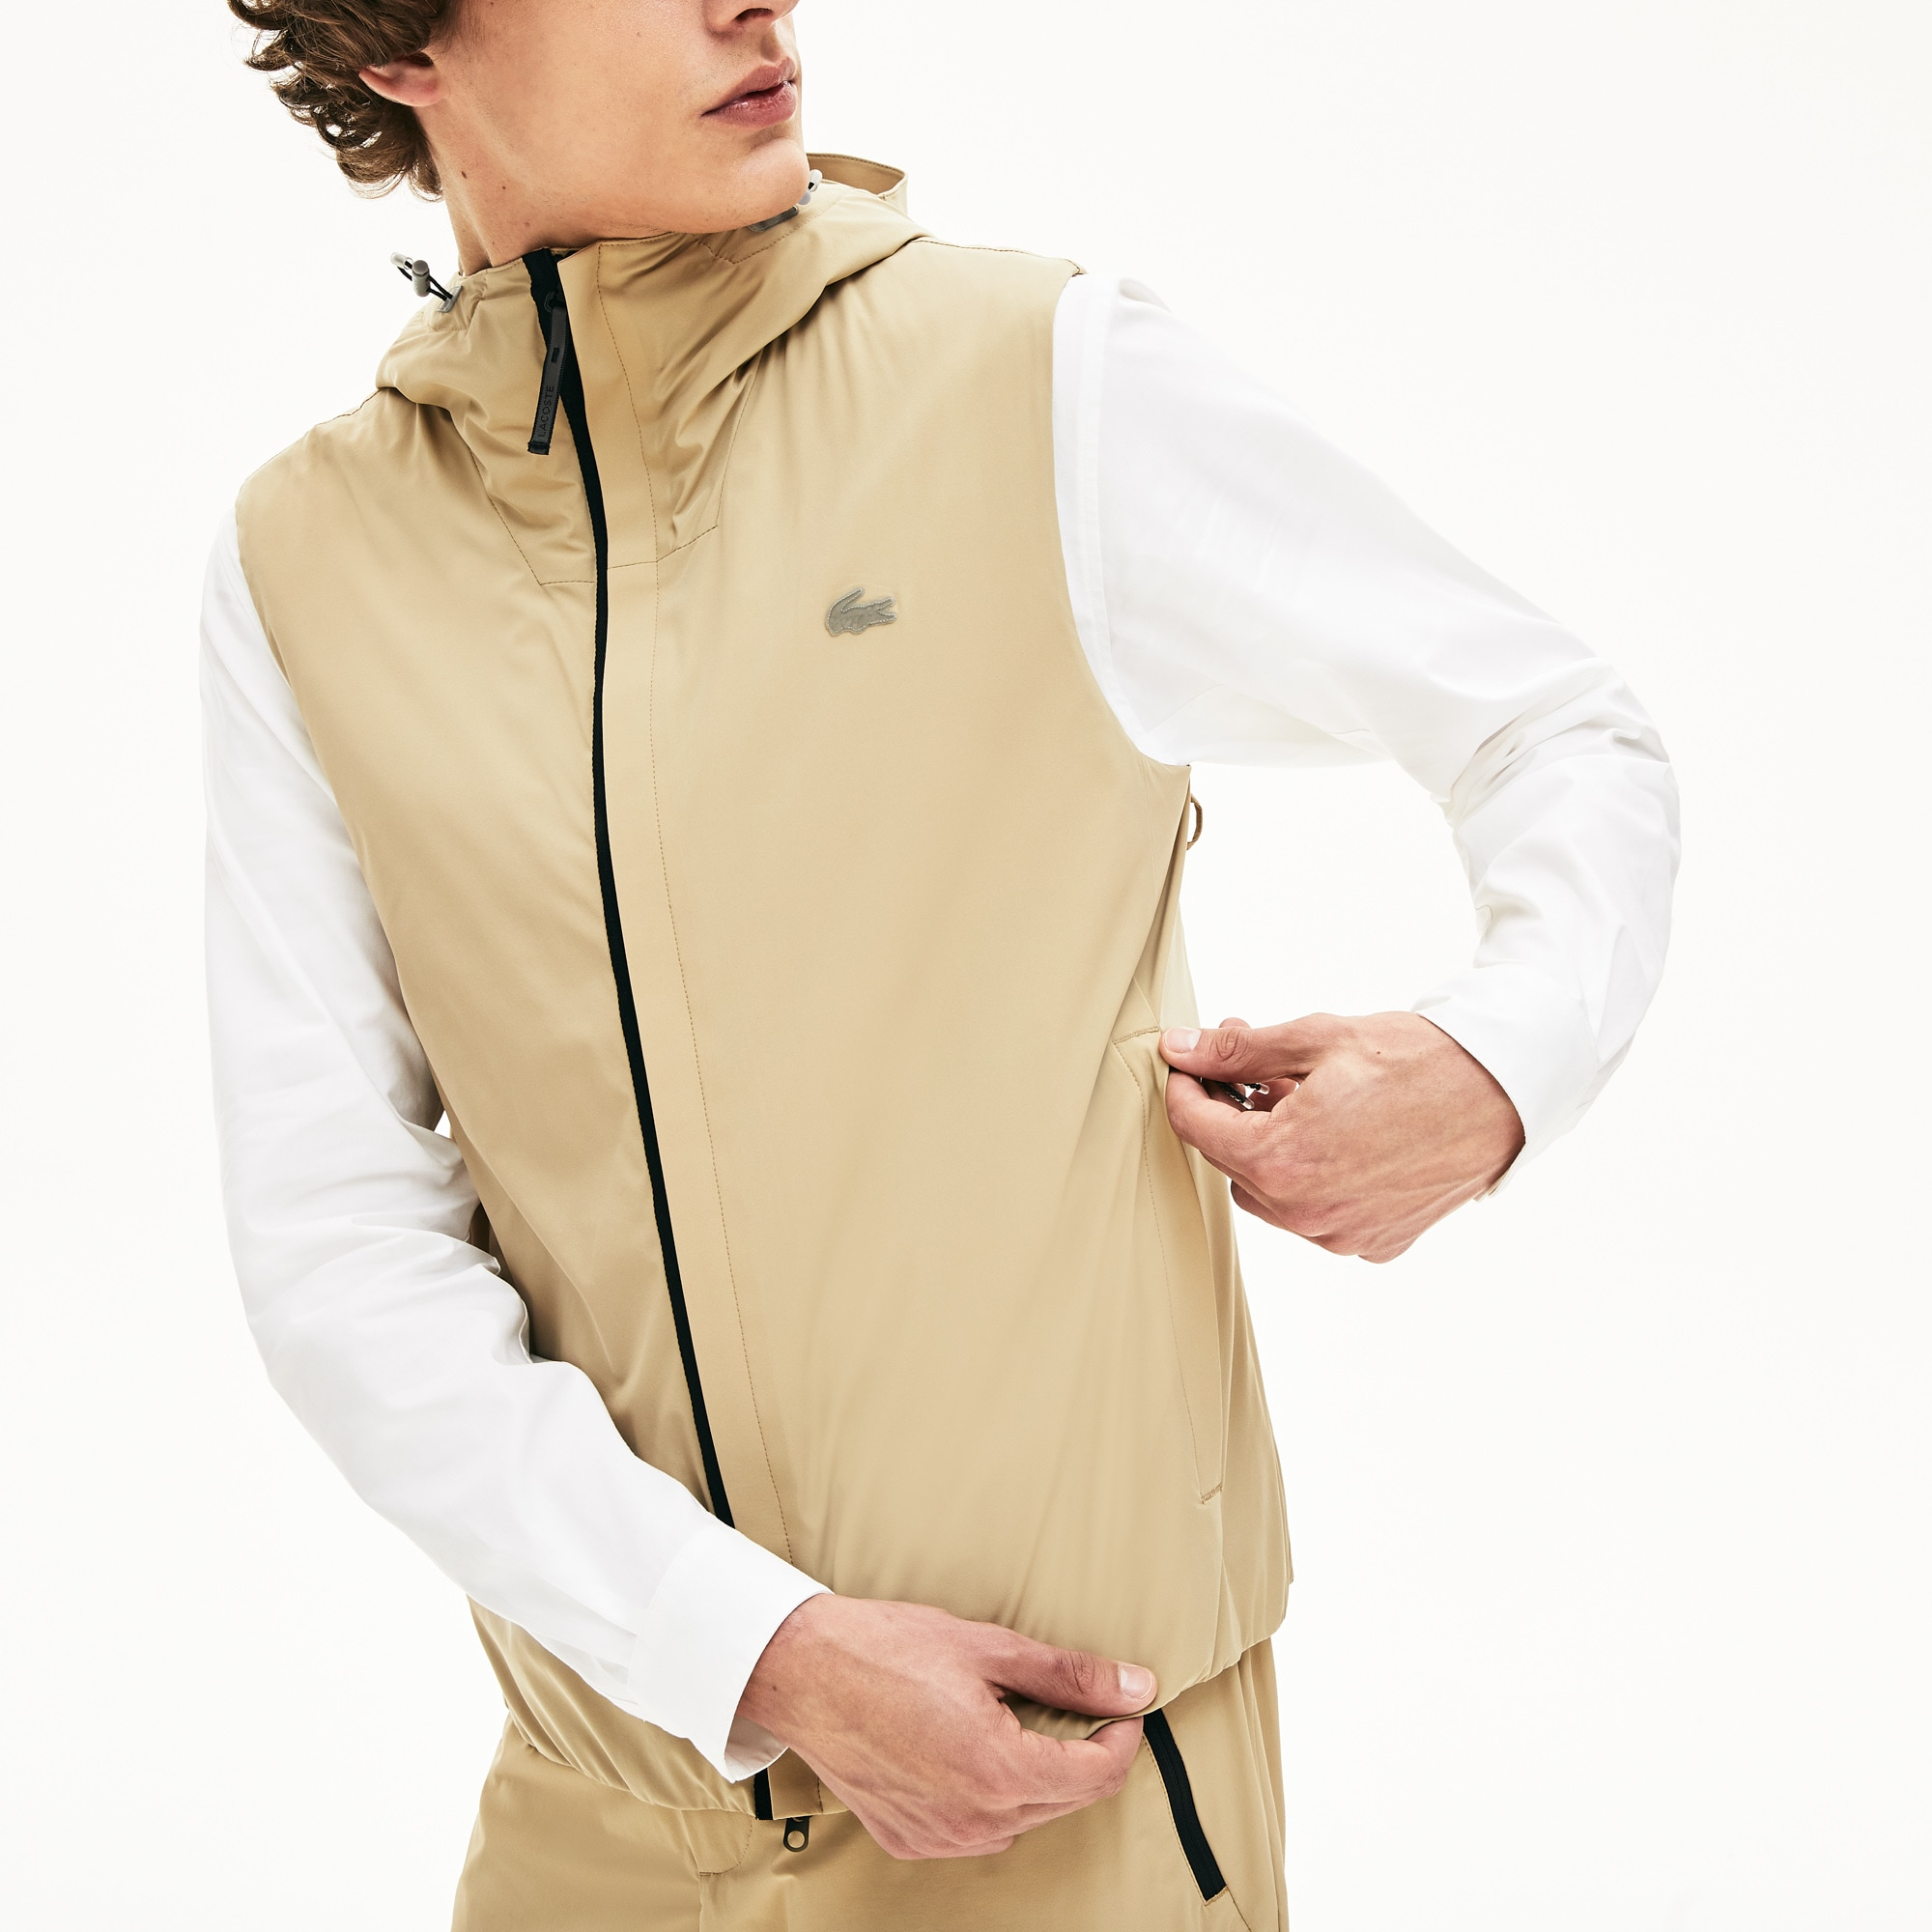 Men's 3-in-1 Ergonomic Jacket